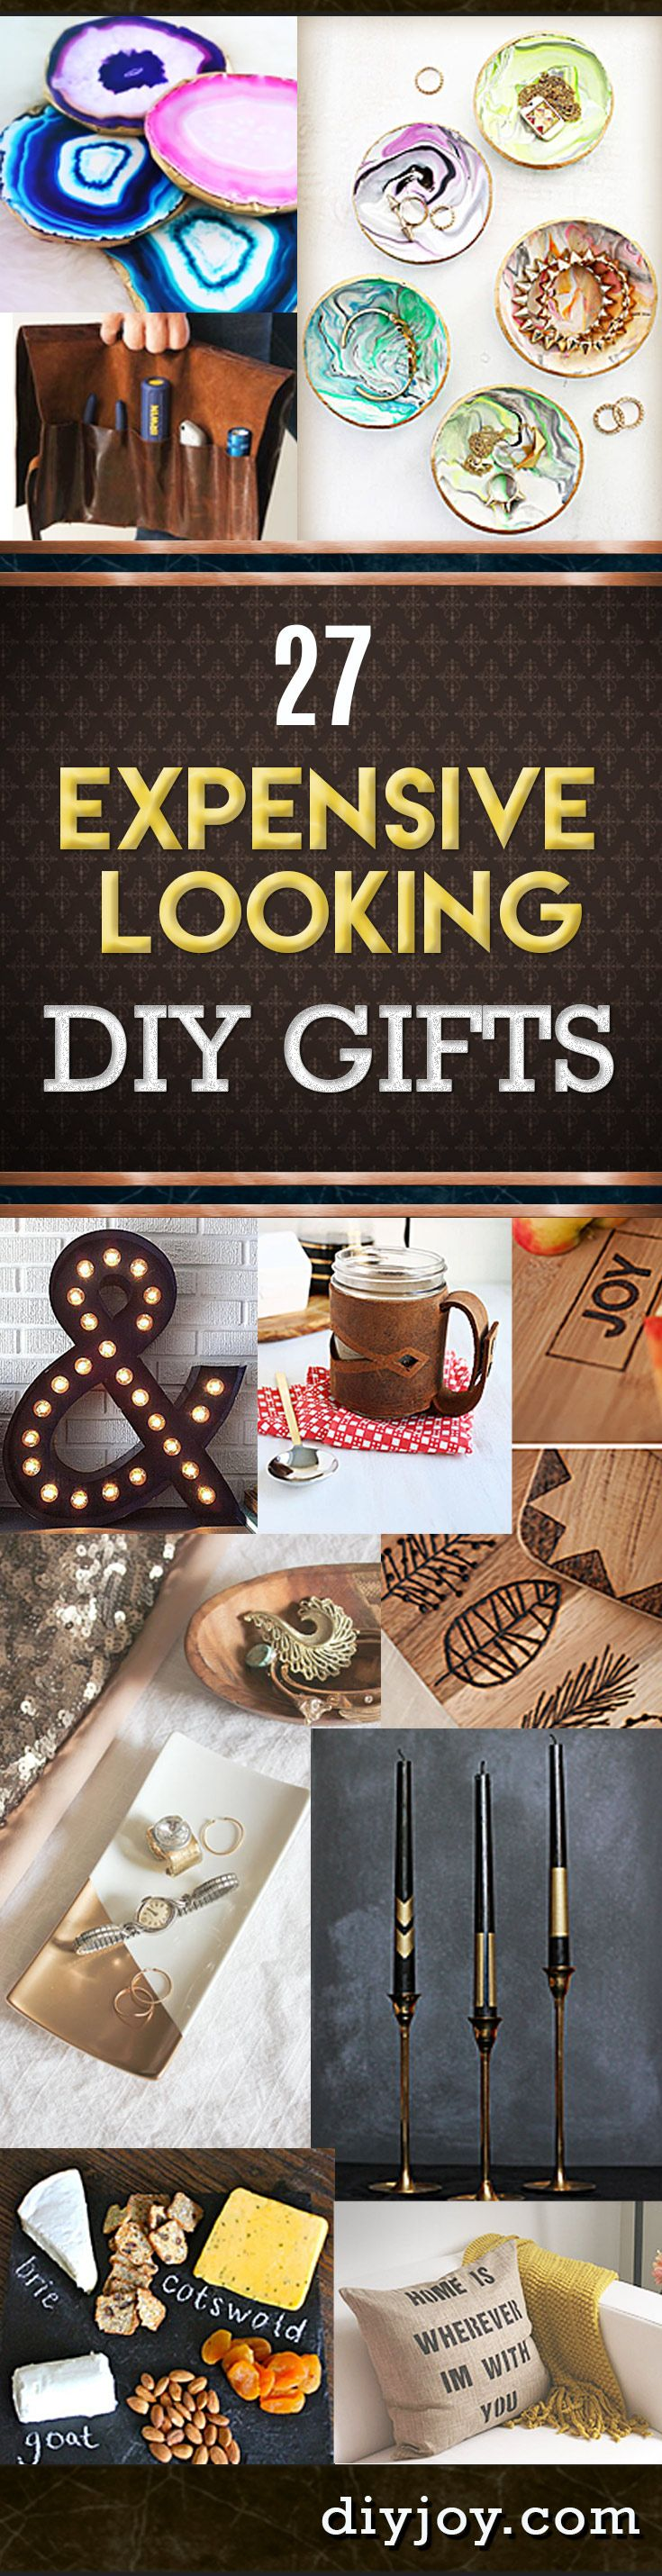 Best 25 diy christmas gifts ideas on pinterest for Diy gift ideas for women